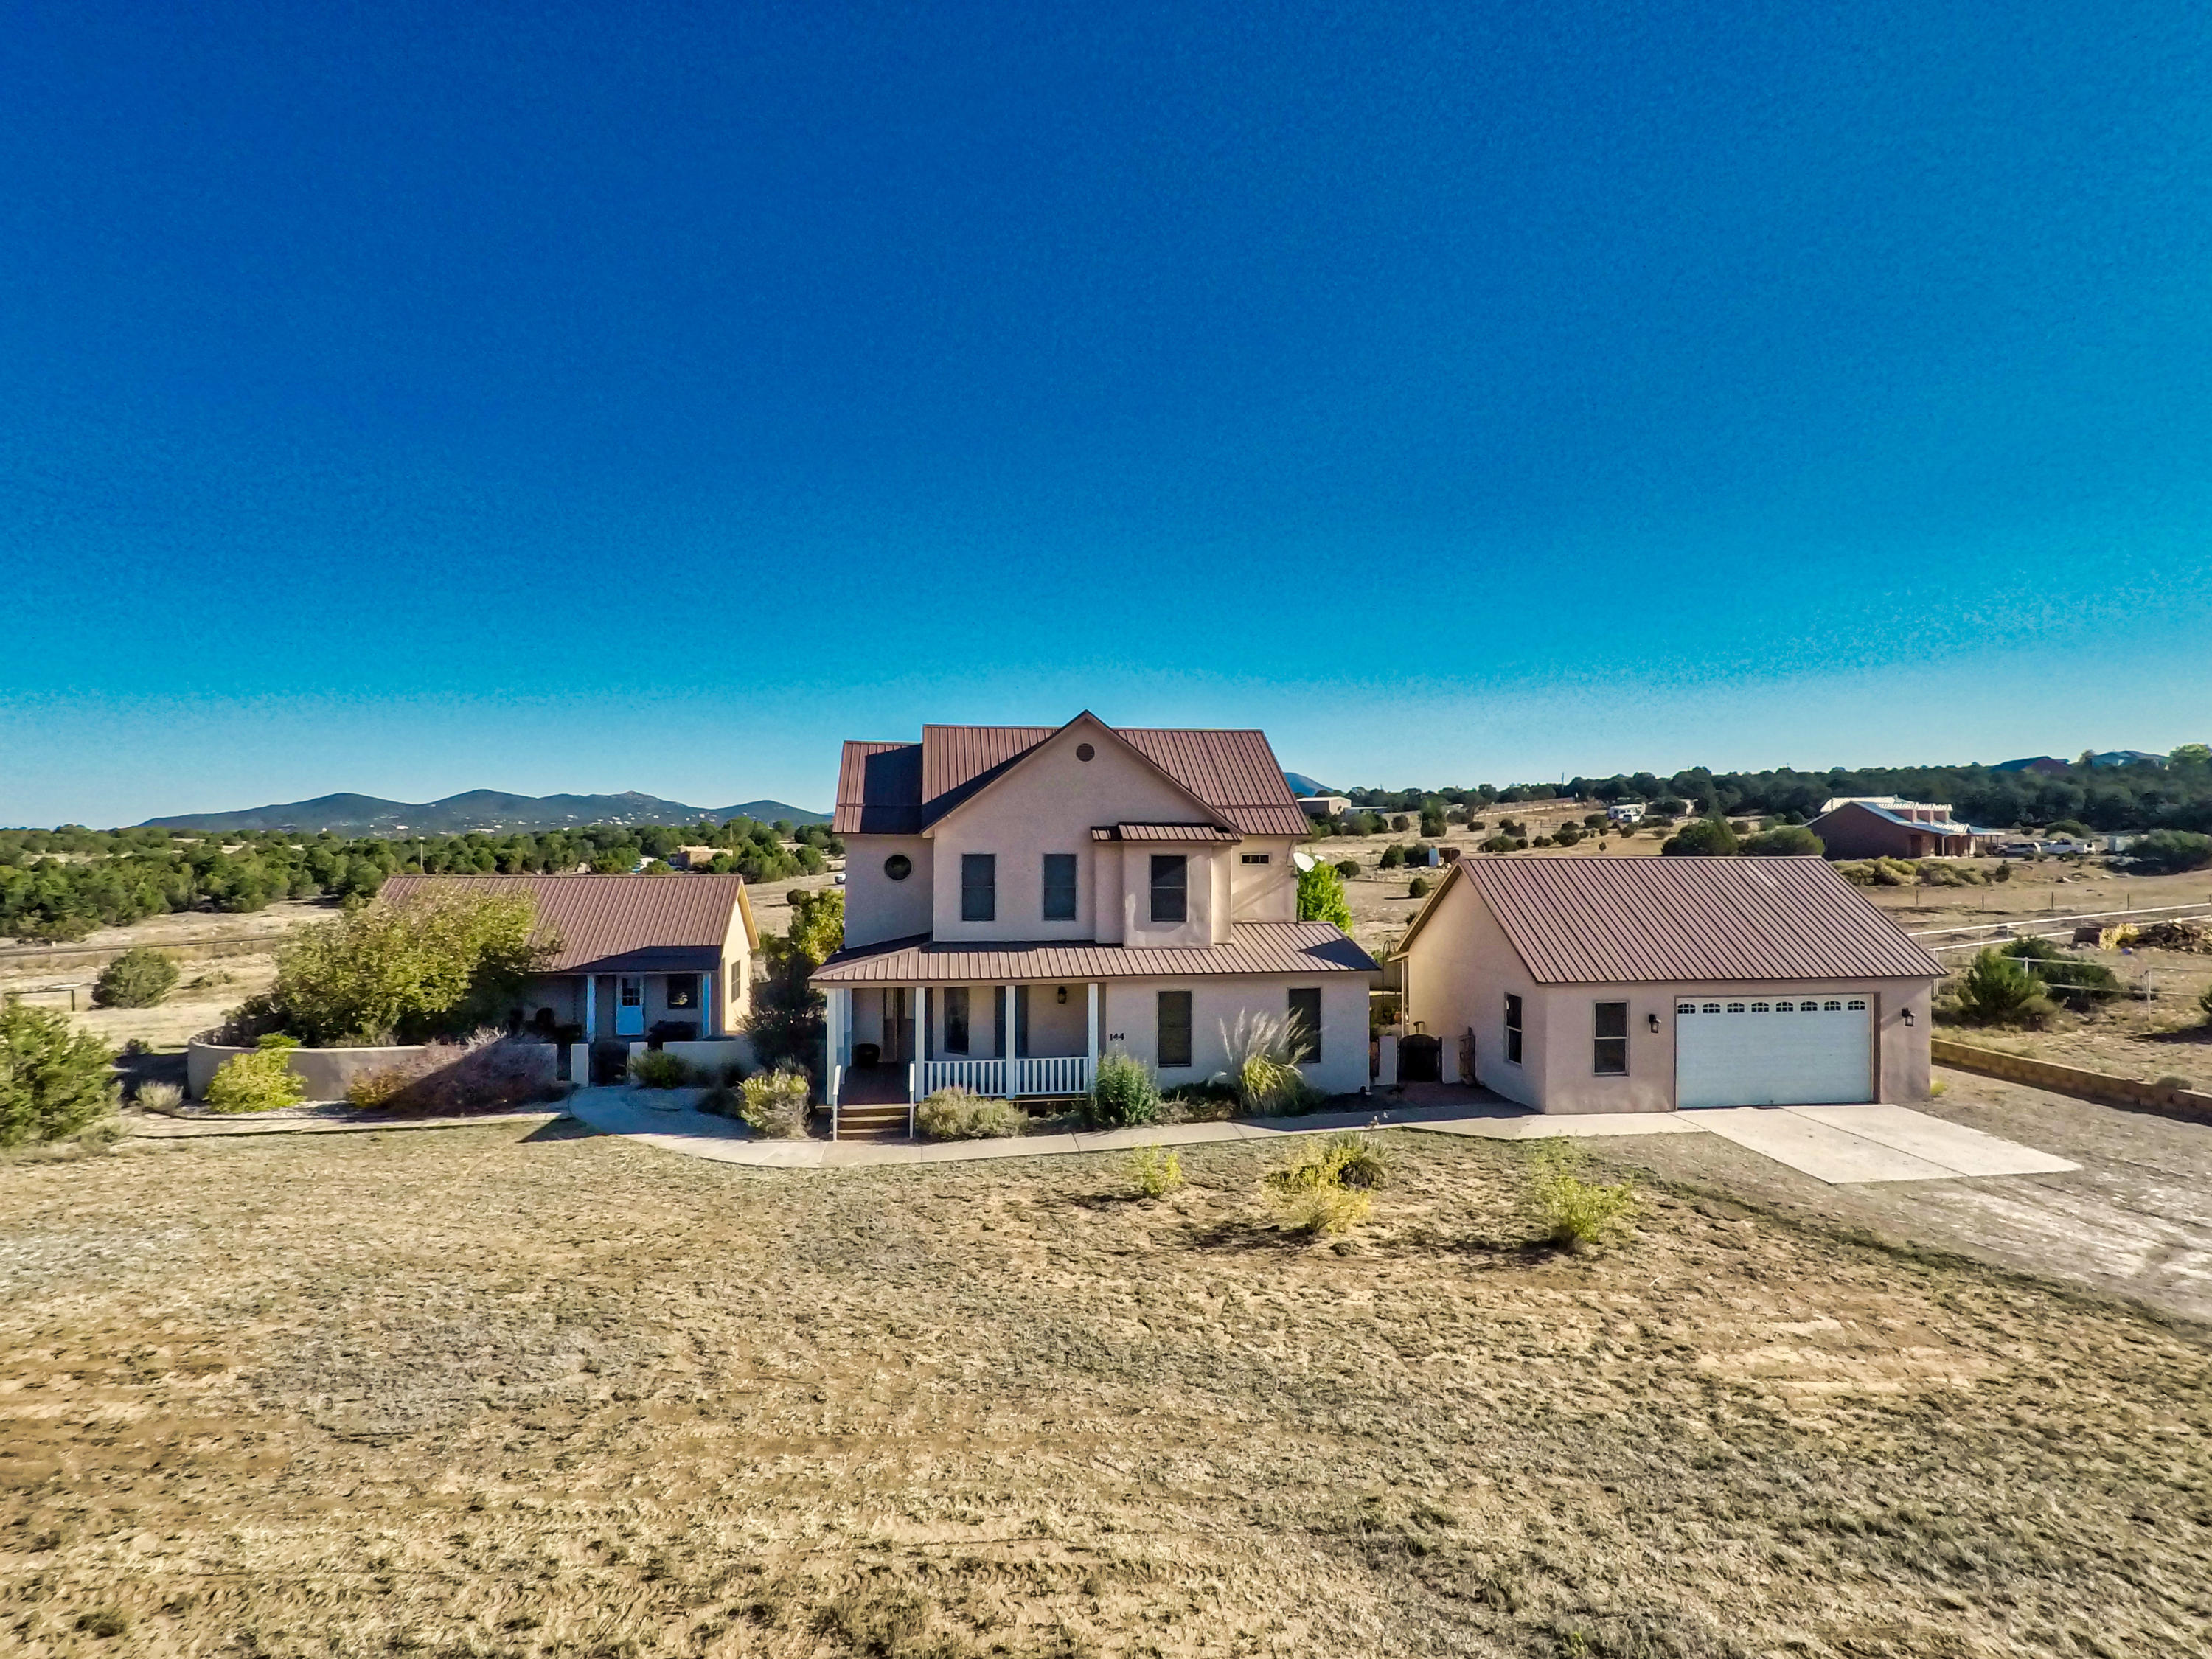 Welcome to Richland Meadows! This beautiful dream home has everything you've been looking for. This custom home has views of the Sandia Mountains right from your own front yard. There is plenty of room to roam on this 2.6 meadowed acres with a nicely landscaped backyard. The formal dining room is ready for family and friend gatherings.The huge 19x19 family room is complete with a nice sized tv that stays with the home. Make your way upstairs where 4 bedrooms and two full baths are there for you when its time to relax. There is a cozy 715 sq. ft. casita with many possibilities with its own bedroom, bath, living room and kitchen area. The finished, heated garage also has a 247 sq. ft addition for all those projects you have planned. Make this home yours before its too late.